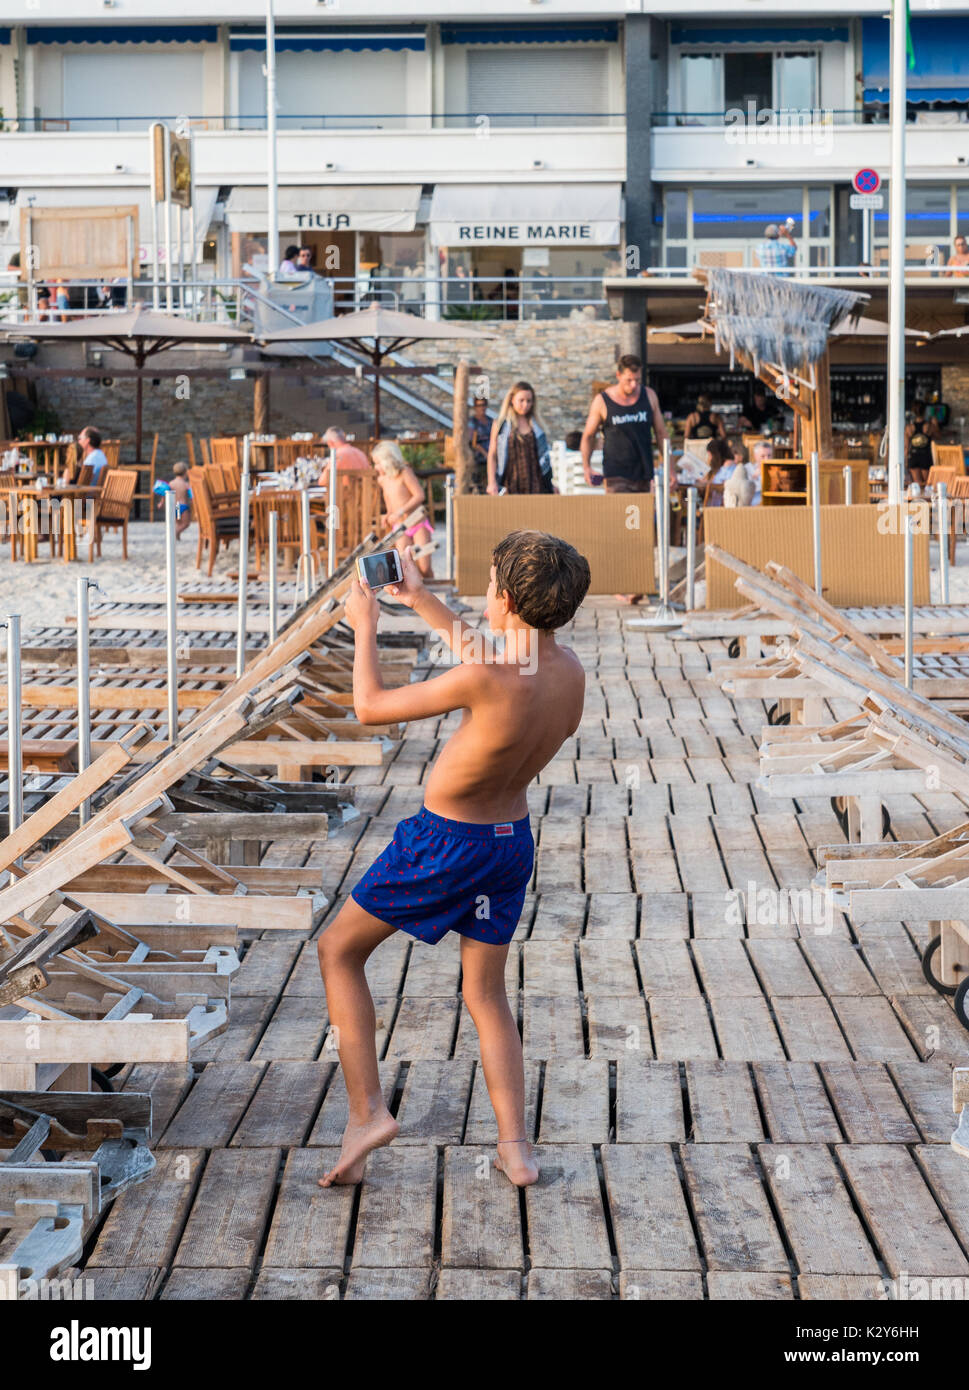 A young boy takes a silly selfie on a pier in Juan les Pins, France - Stock Image